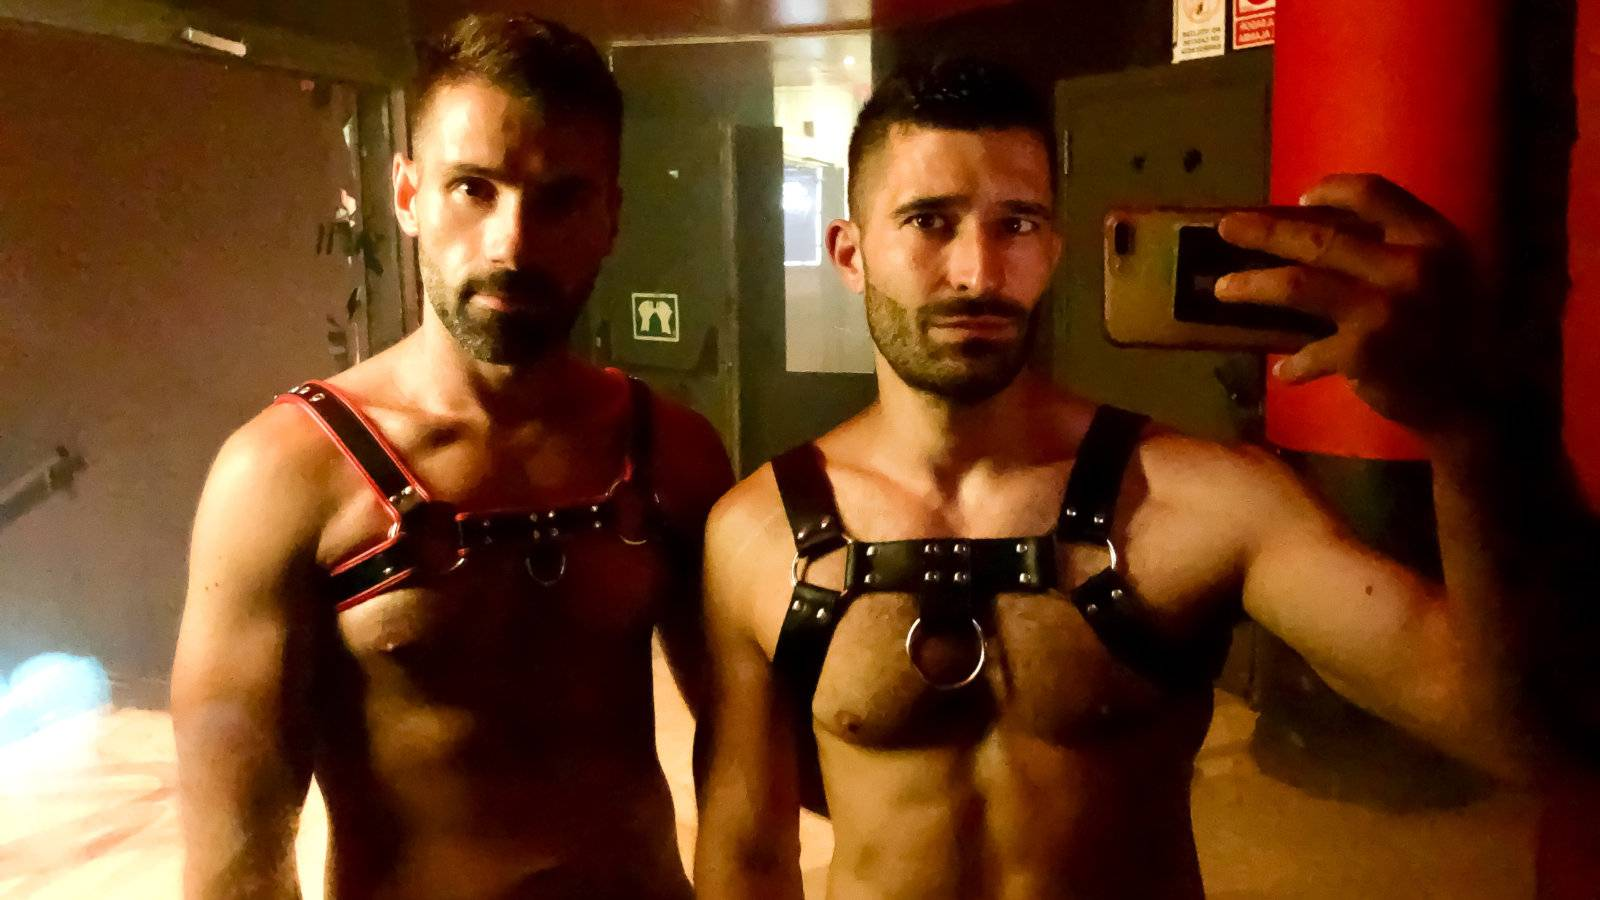 The Black Room Club is one of the most fun and popular parties to experience during Barcelona Pride